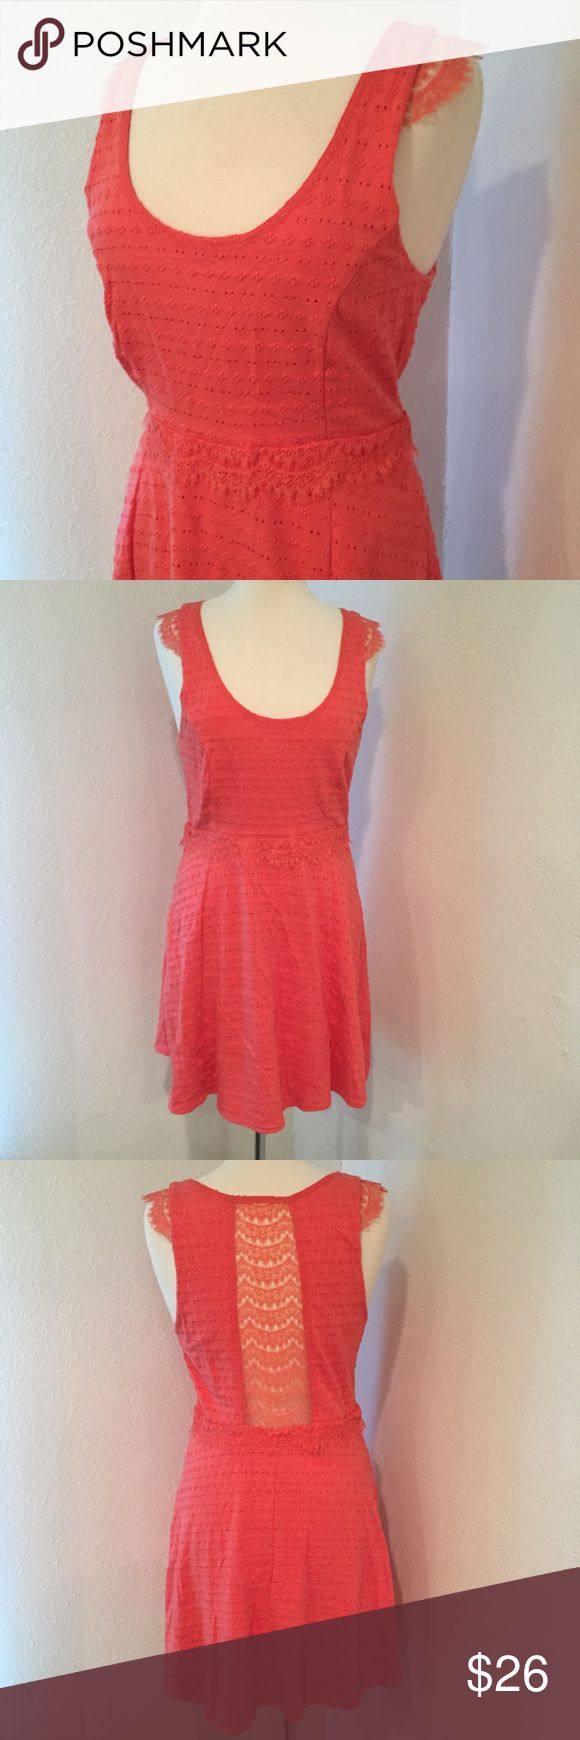 Free People Coral Eyelet & Lace Dress Bright and beautiful dress is accented with lace inset at back and lace cap sleeves. In very good condition. Free People Dresses